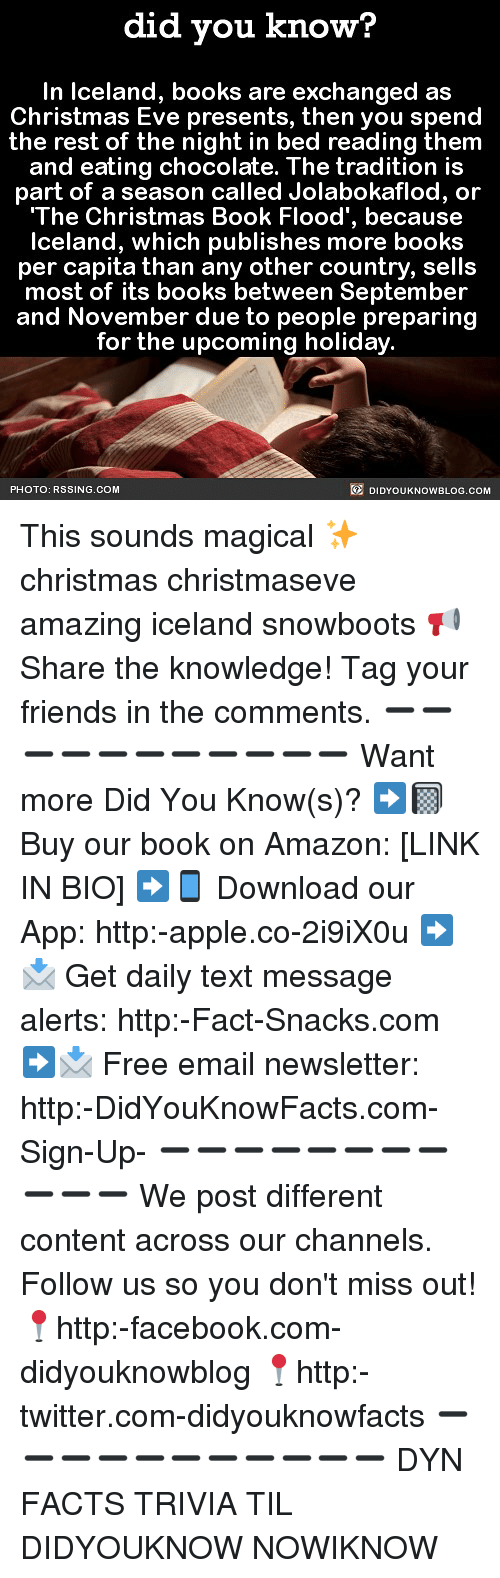 Amazon, Apple, and Books: did you know?  In lceland, books are exchanged as  Christmas Eve presents, then you spend  the rest of the night in bed reading them  and eating chocolate. The tradition is  part of a season called Jolabokaflod, or  'The Christmas Book Flood', becau  se  Iceland, which publishes more books  per capita than any other country, sells  most of its books between September  and November due to people preparing  for the upcoming holiday  PHOTO: RSSING.COM  DIDYOUKNOWBLOG.cOM This sounds magical ✨ christmas christmaseve amazing iceland snowboots 📢 Share the knowledge! Tag your friends in the comments. ➖➖➖➖➖➖➖➖➖➖➖ Want more Did You Know(s)? ➡📓 Buy our book on Amazon: [LINK IN BIO] ➡📱 Download our App: http:-apple.co-2i9iX0u ➡📩 Get daily text message alerts: http:-Fact-Snacks.com ➡📩 Free email newsletter: http:-DidYouKnowFacts.com-Sign-Up- ➖➖➖➖➖➖➖➖➖➖➖ We post different content across our channels. Follow us so you don't miss out! 📍http:-facebook.com-didyouknowblog 📍http:-twitter.com-didyouknowfacts ➖➖➖➖➖➖➖➖➖➖➖ DYN FACTS TRIVIA TIL DIDYOUKNOW NOWIKNOW